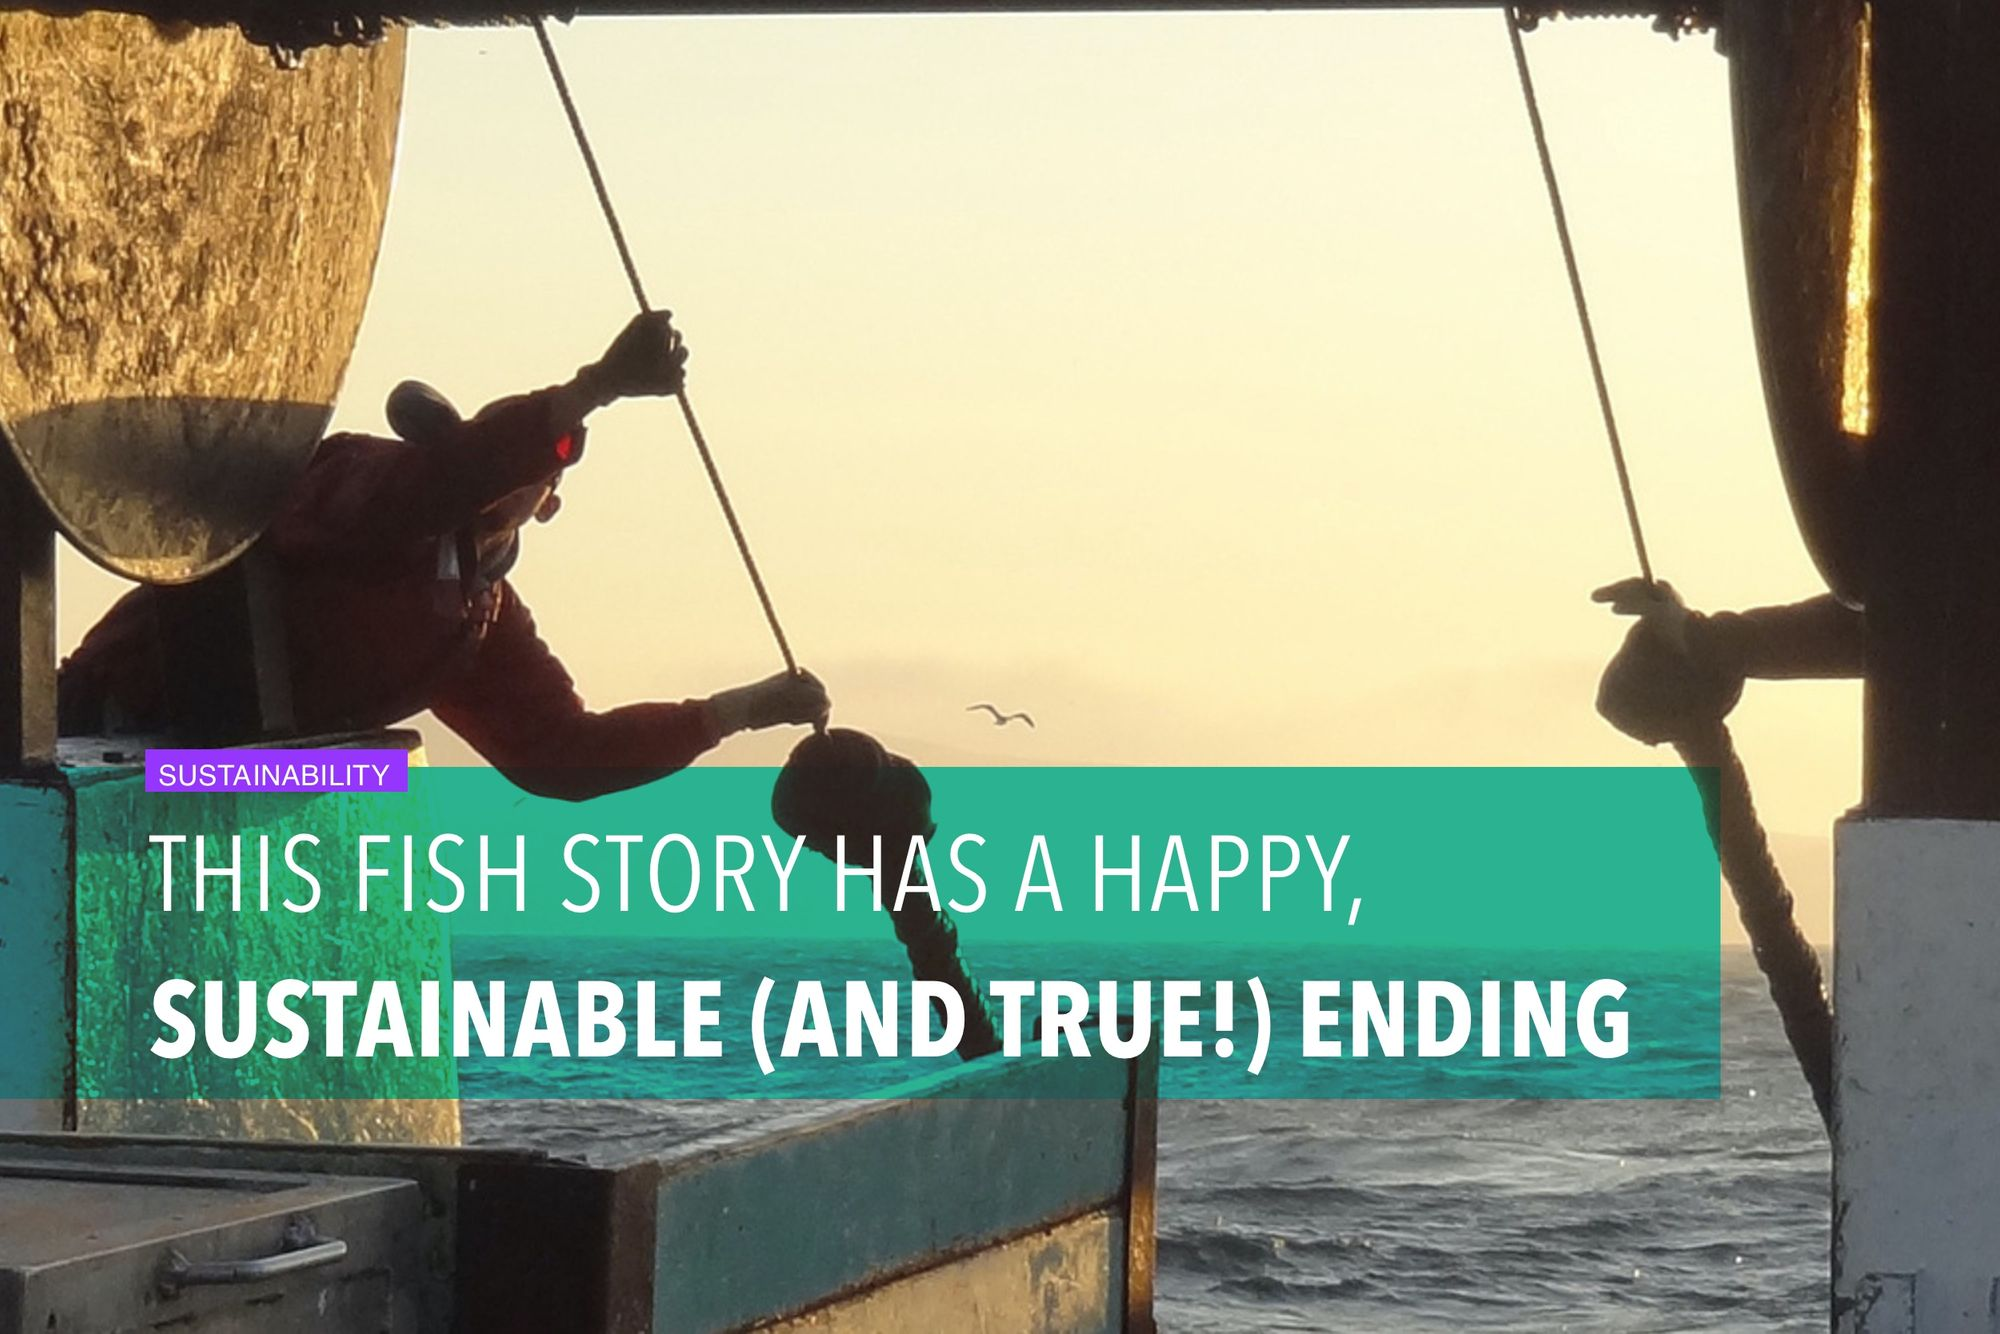 This fish story has a happy, sustainable (and true!) ending